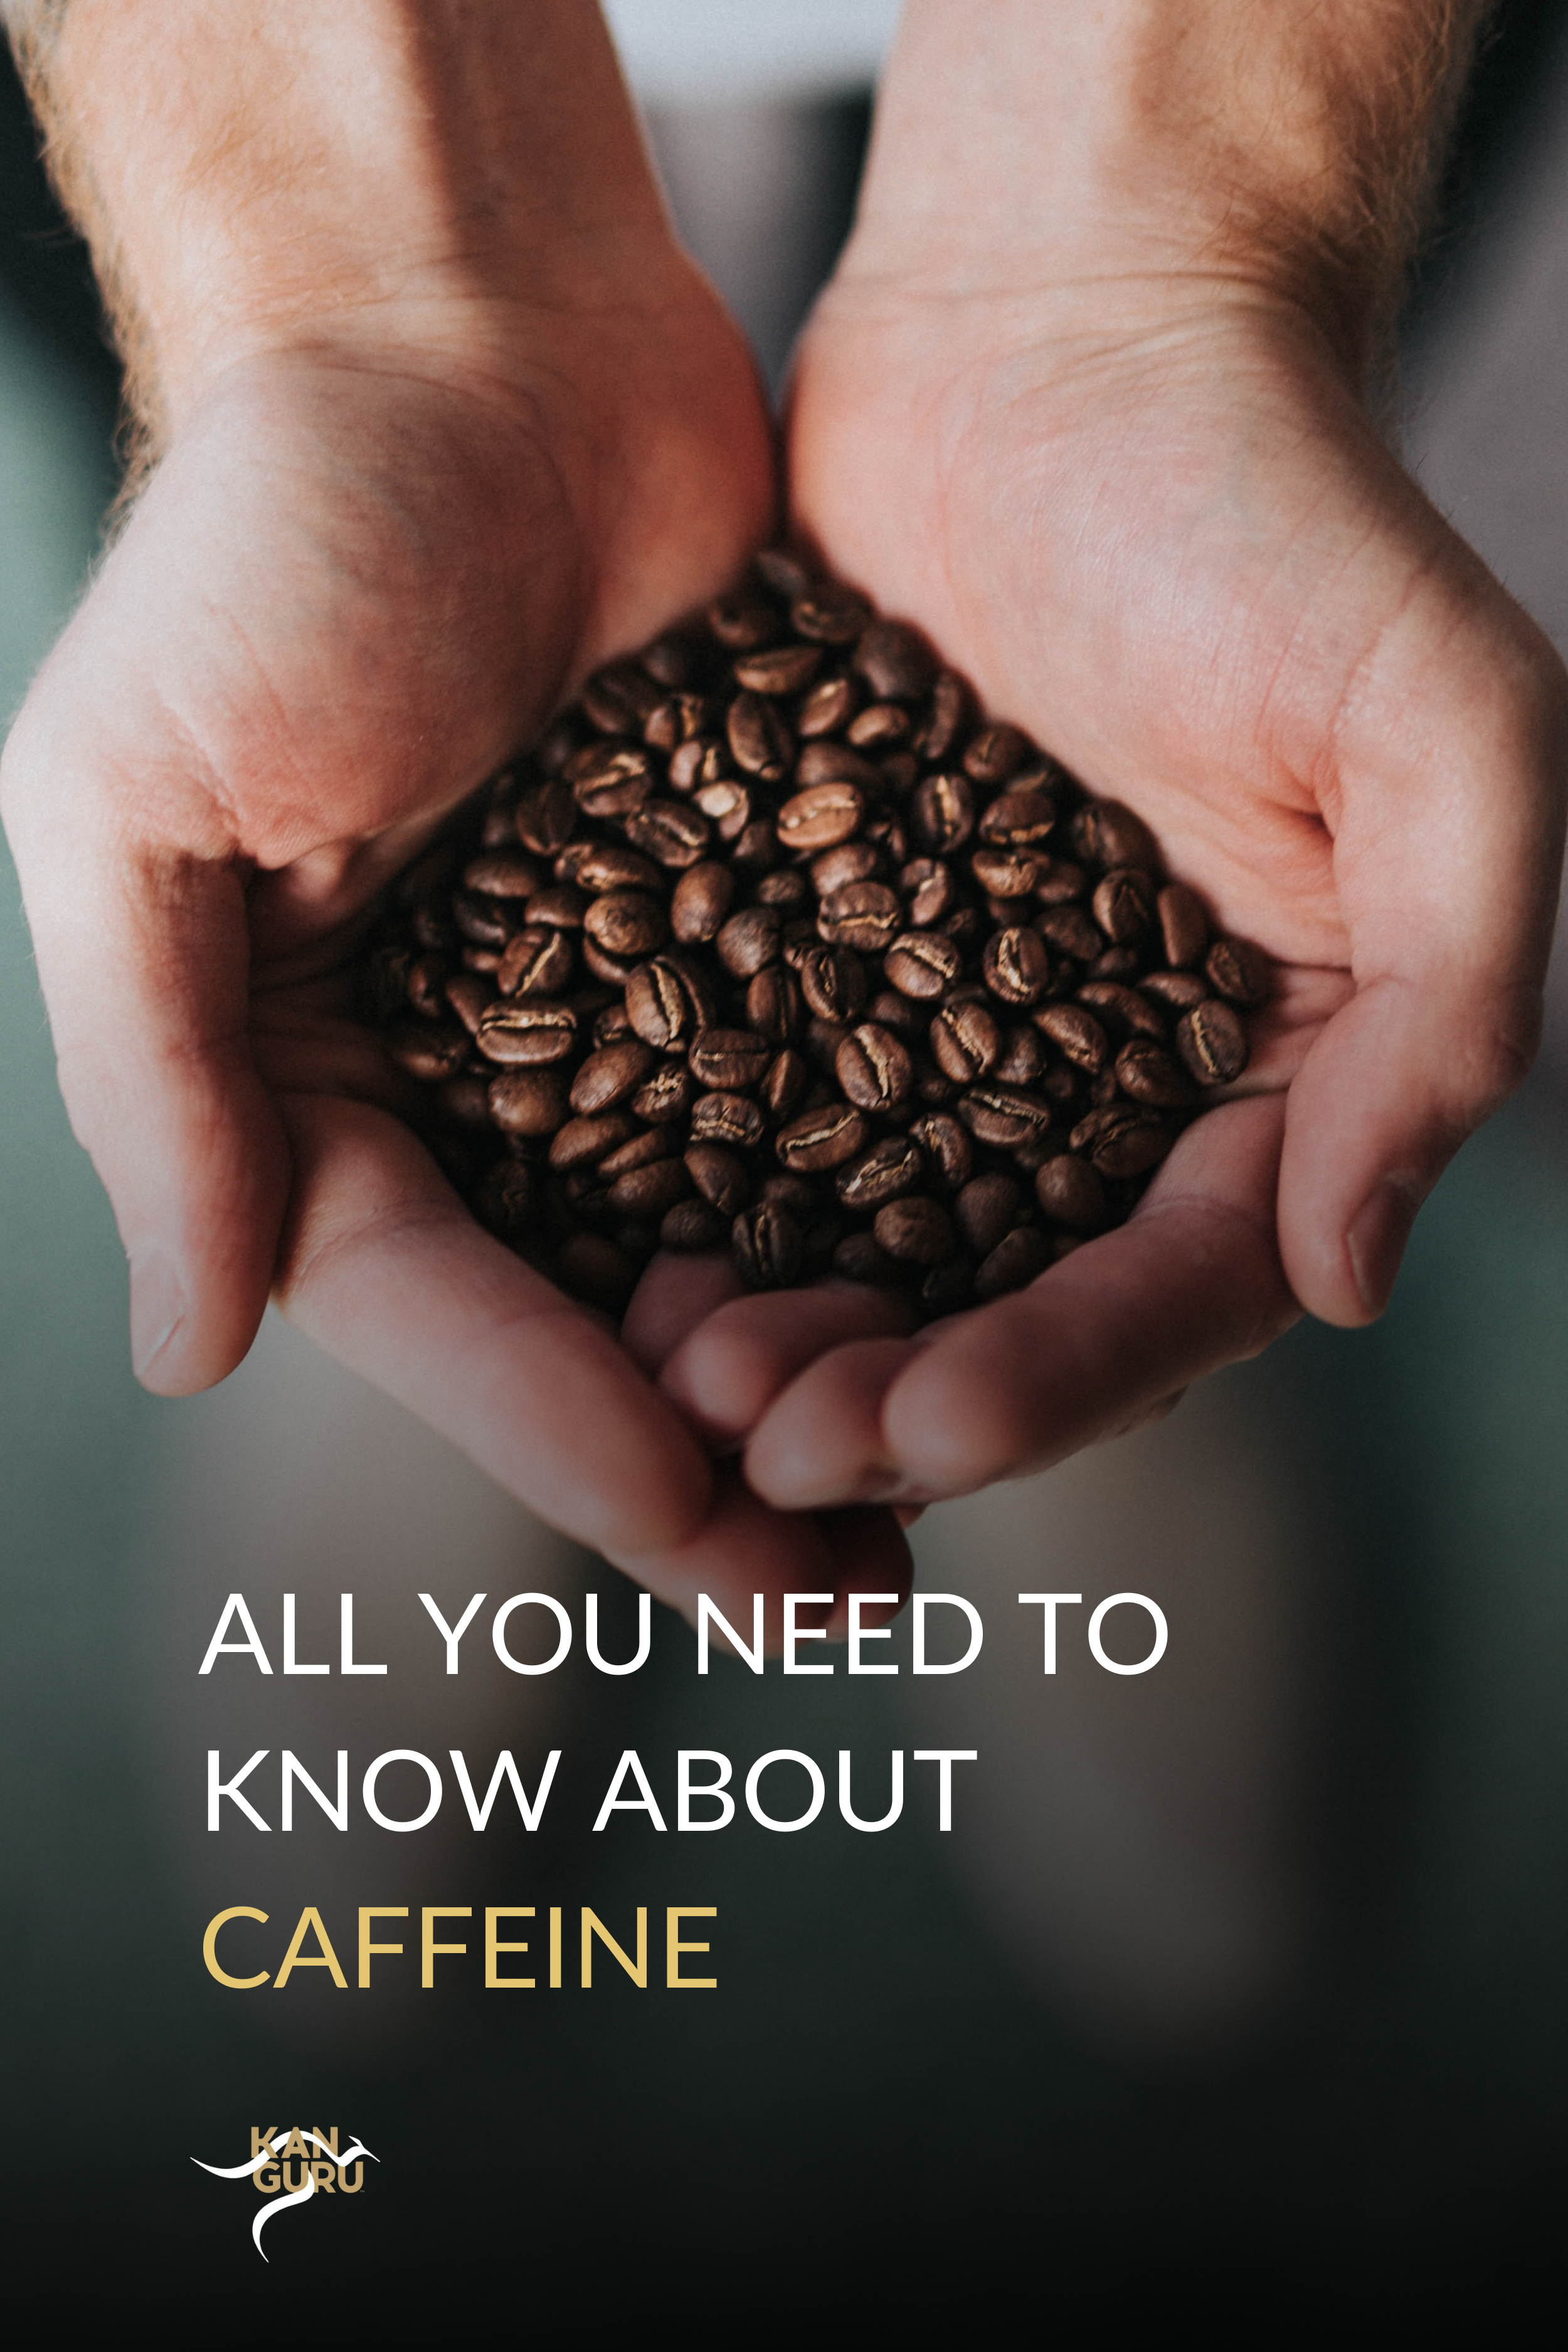 On average, three-quarters of Aussies enjoy at least one cup of coffee per day. It's a social ritual and comes with an energy boost in the form of caffeine.